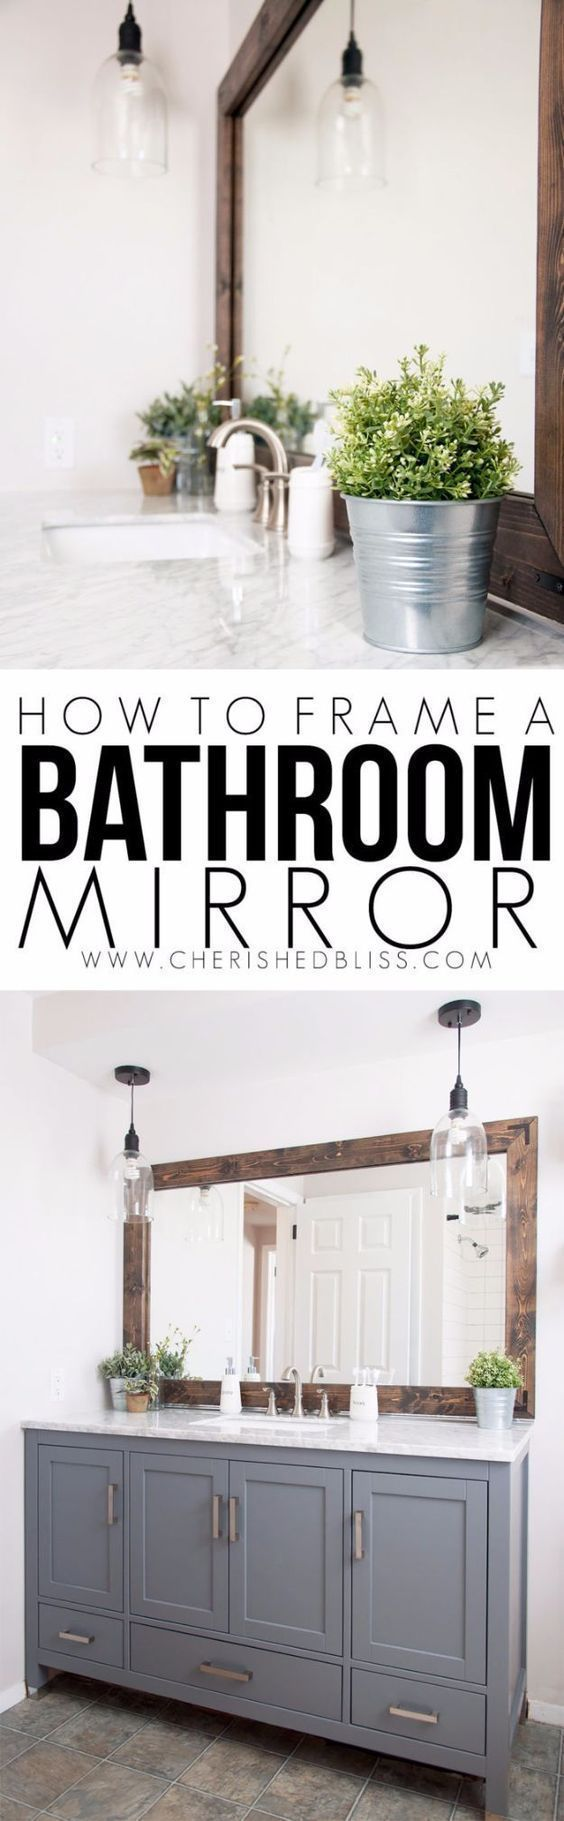 The 436 best home improvement diy on a budget images on Pinterest ...